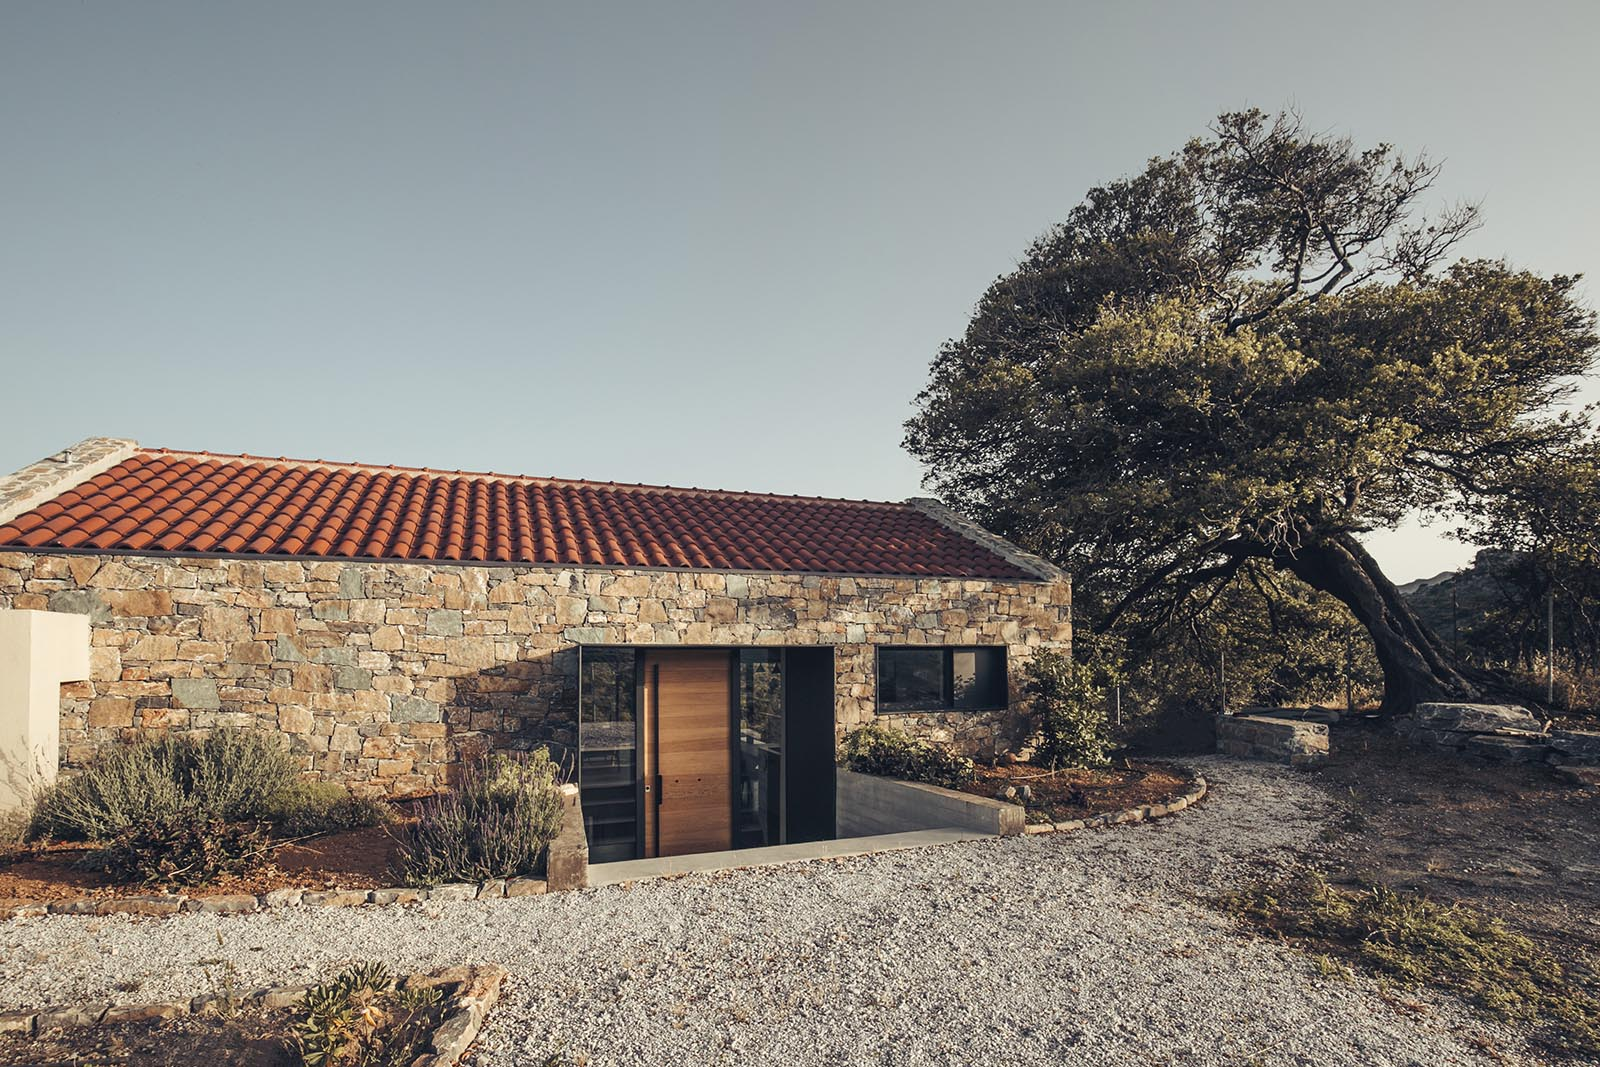 A stone house with black metal accents.